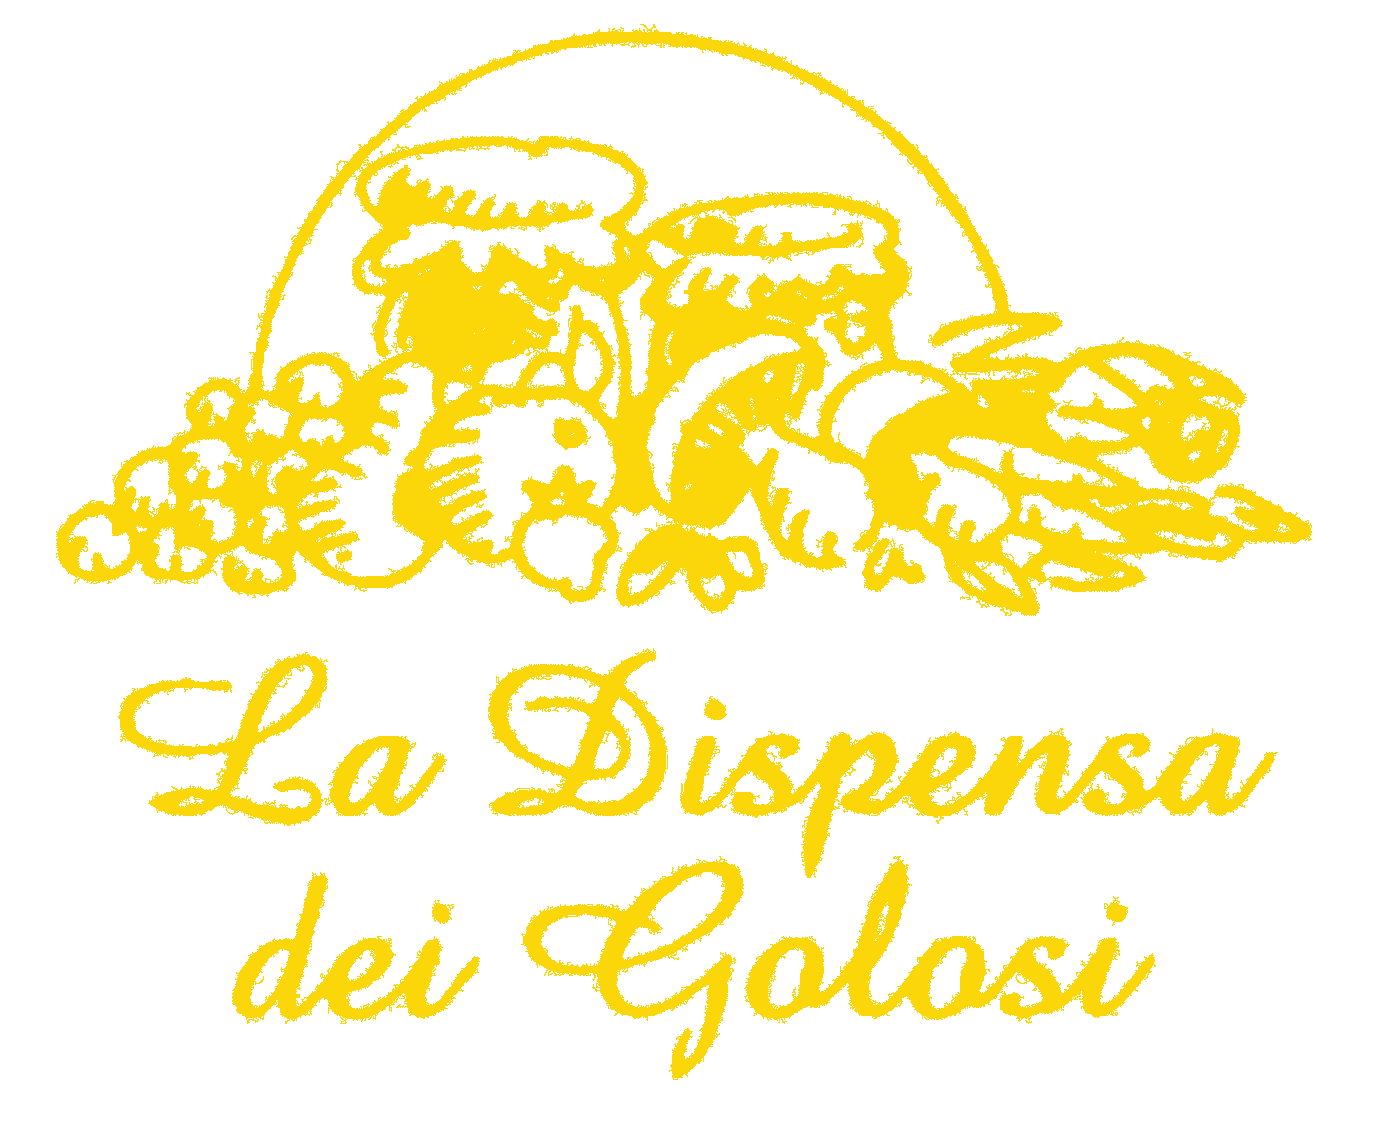 DispensaGolosi